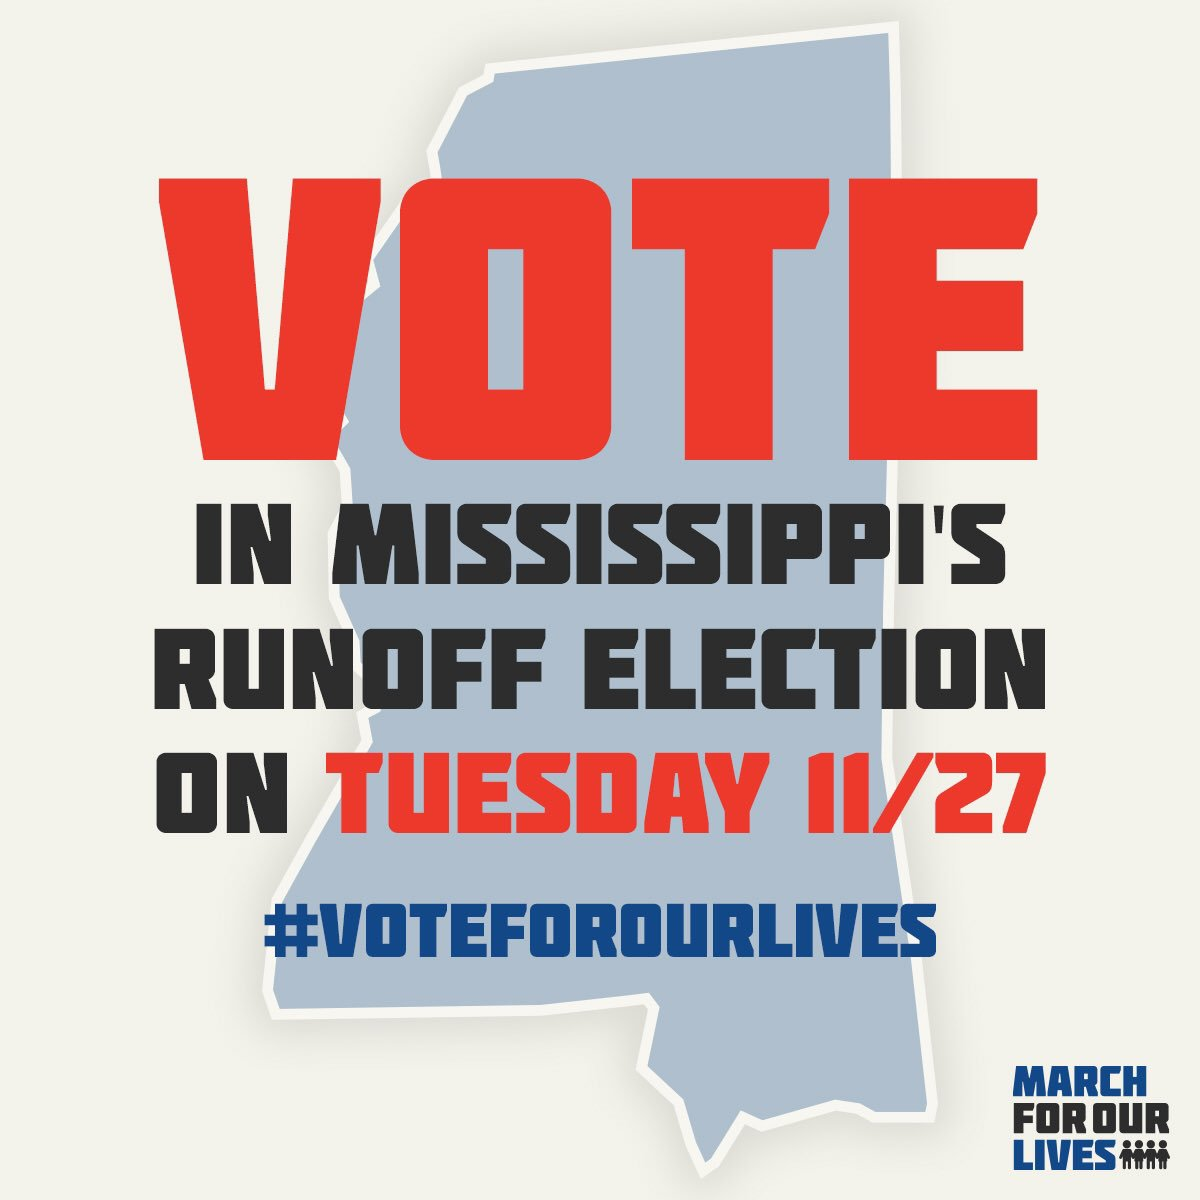 Get out there, Mississippi! #VoteForOurLives 🗳